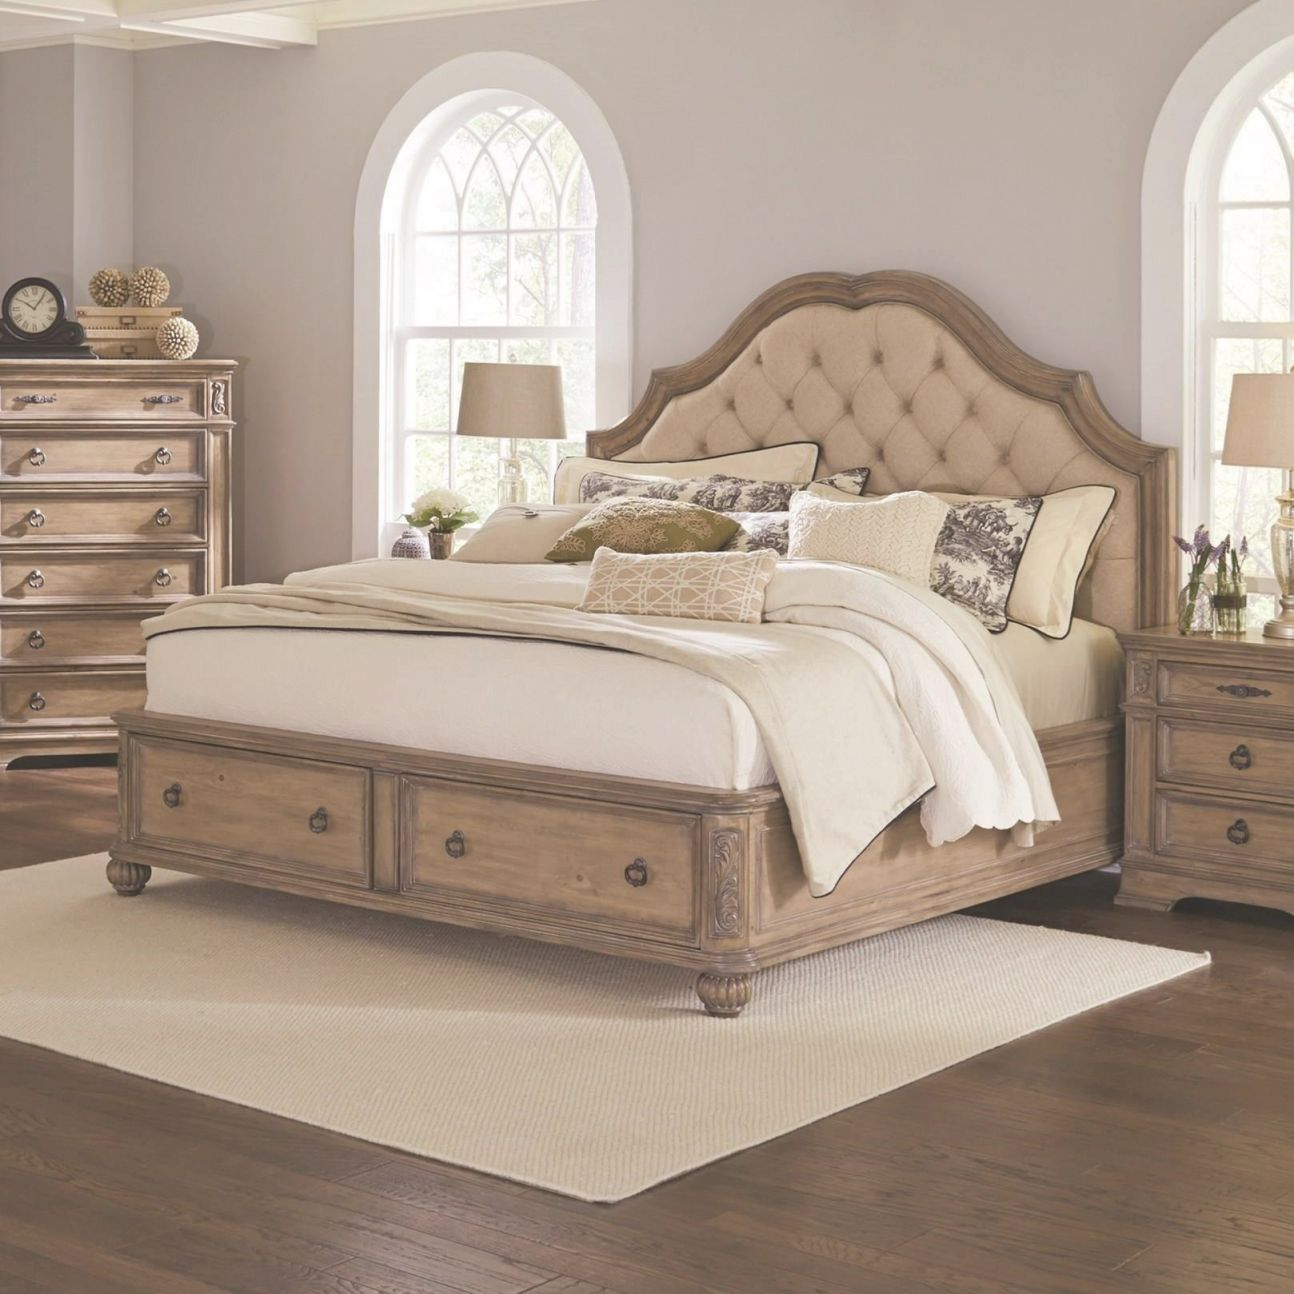 Ilana Queen Storage Bed With Upholstered Headboardcoaster At Northeast  Factory Direct with Cheap Queen Bedroom Furniture Sets